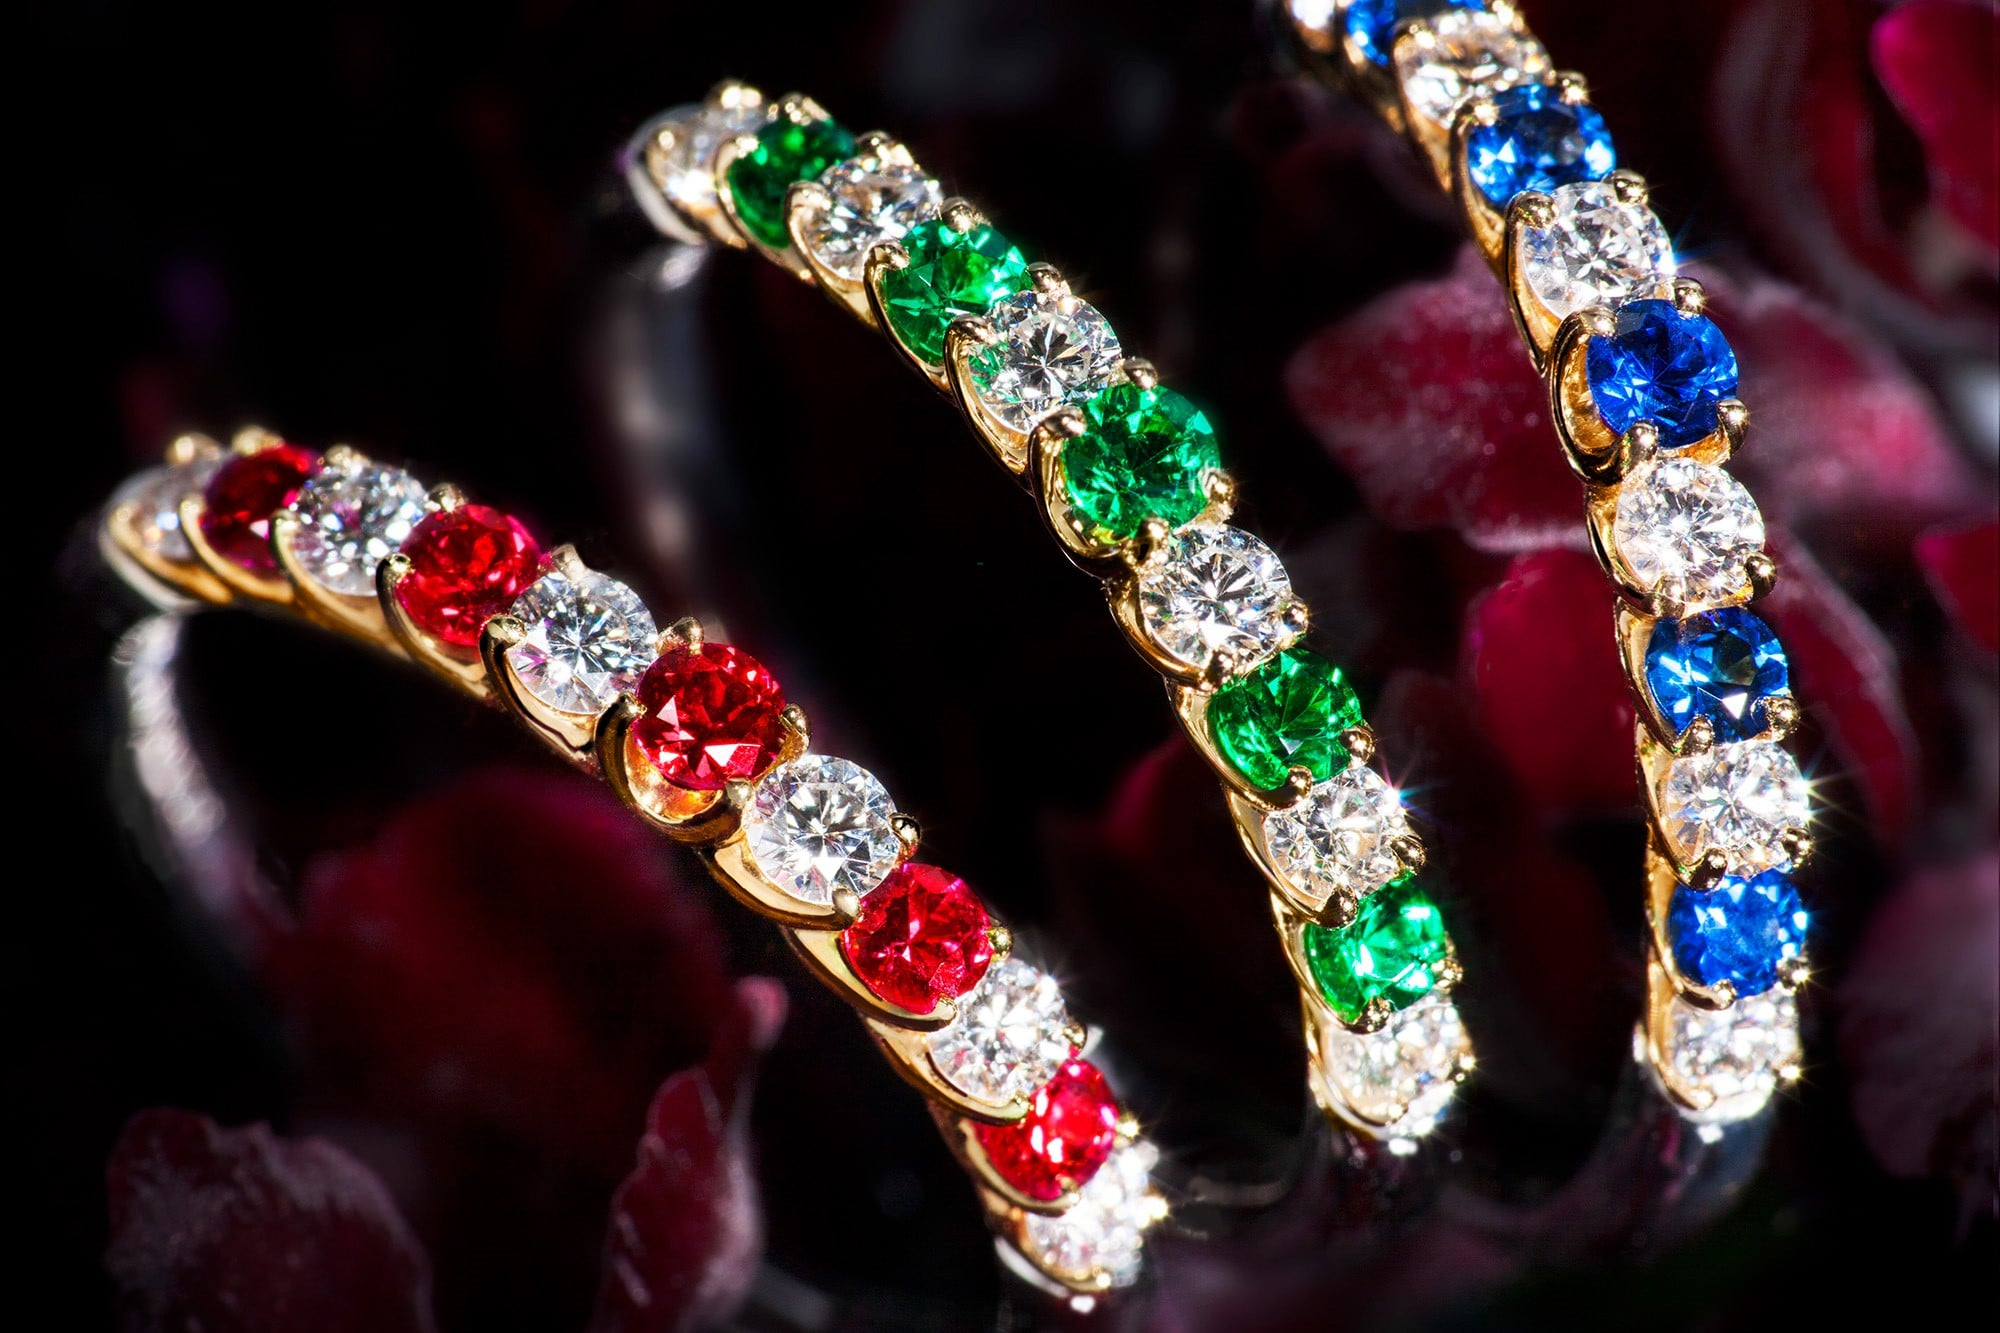 """The bundling uses a combination of diamonds and color stones. The diamonds, rubies, sapphires and unprocessed emerald used in the jewellery are carefully selected. All of the """"Anniversary Bundling"""